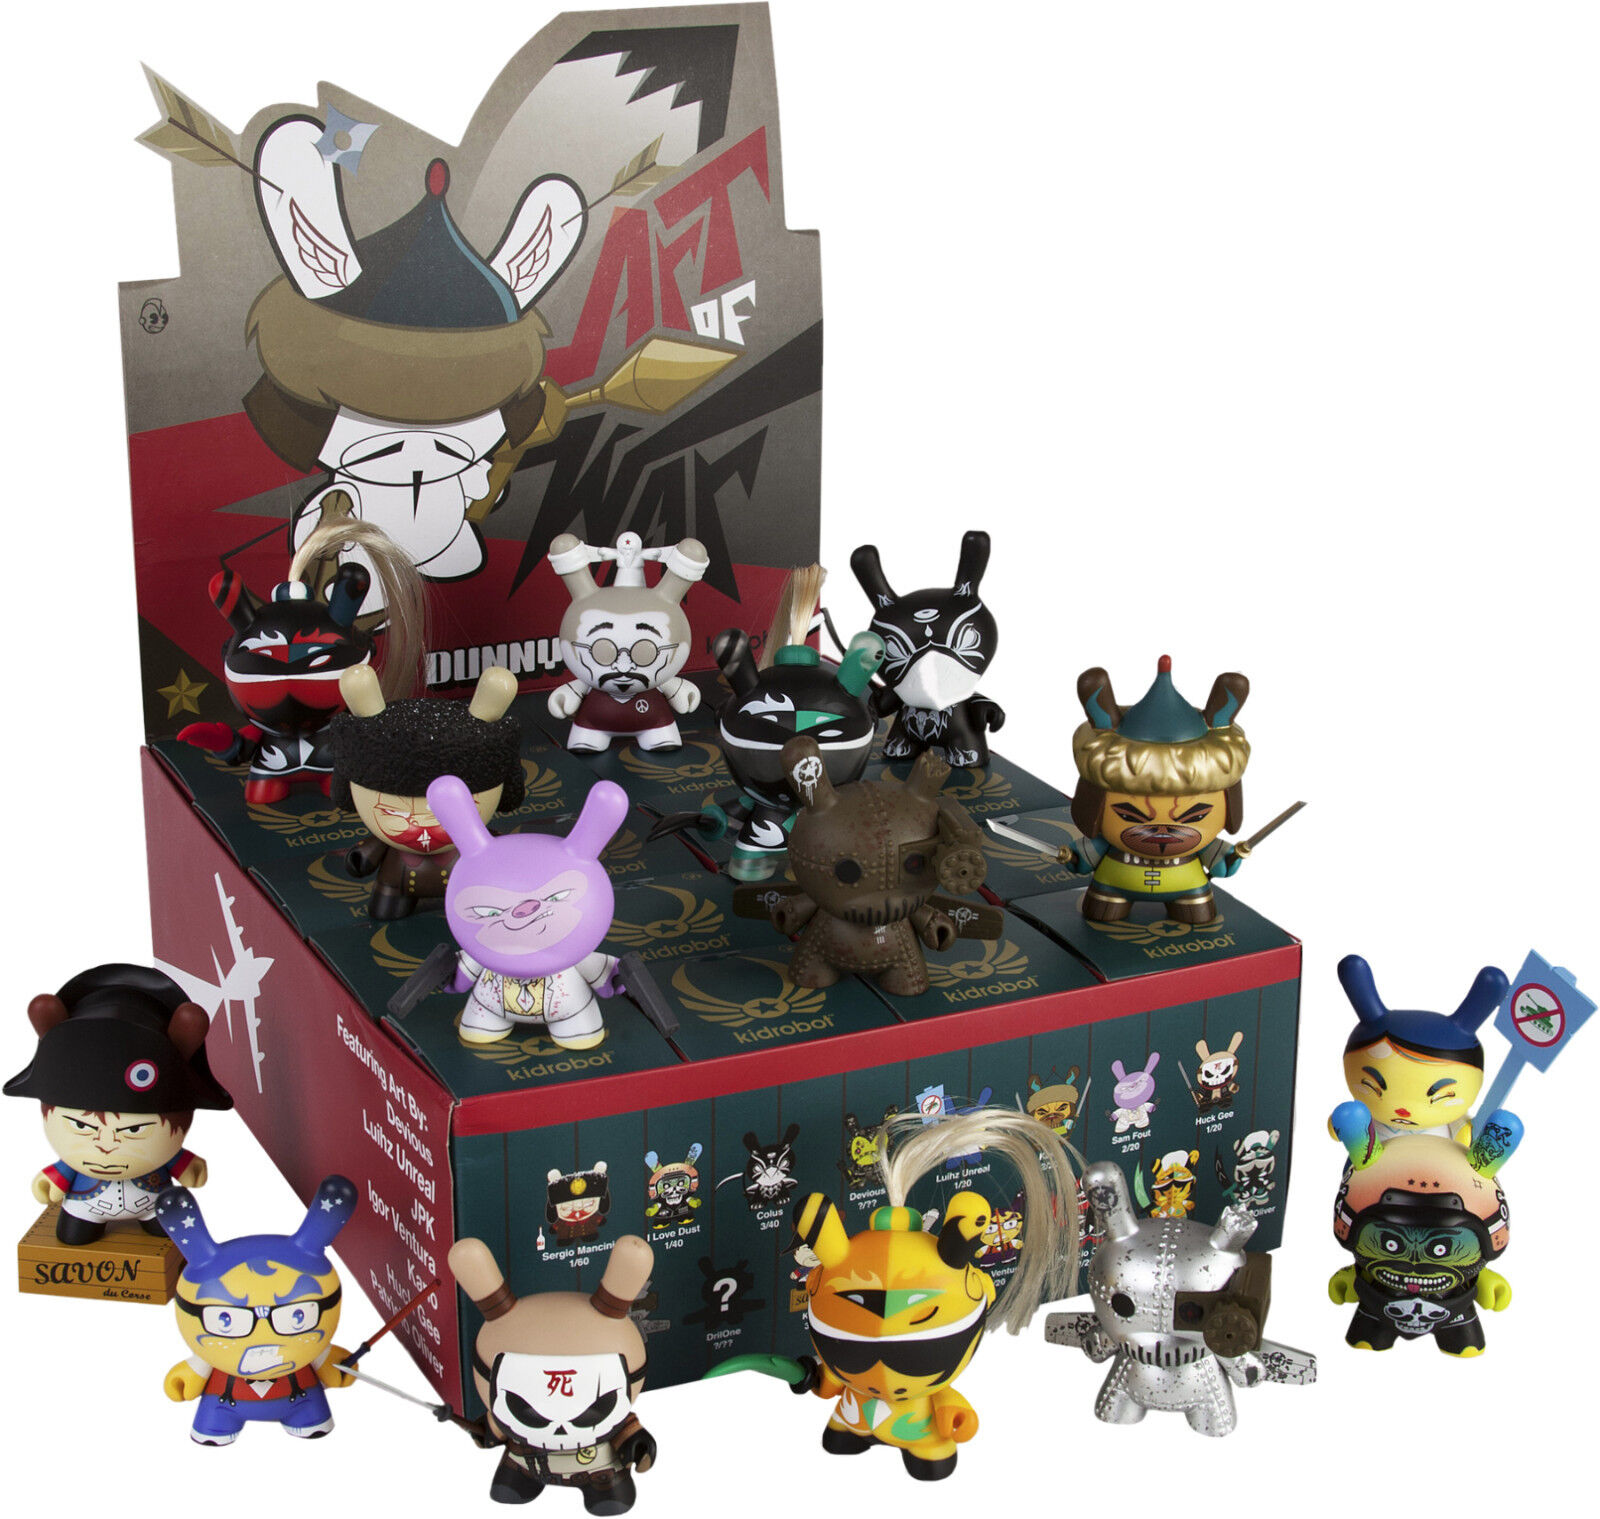 KIDROBOT Dunny 3  'The Art of War' 2014 Blind Box Vinyl Figurines Display (20ct)